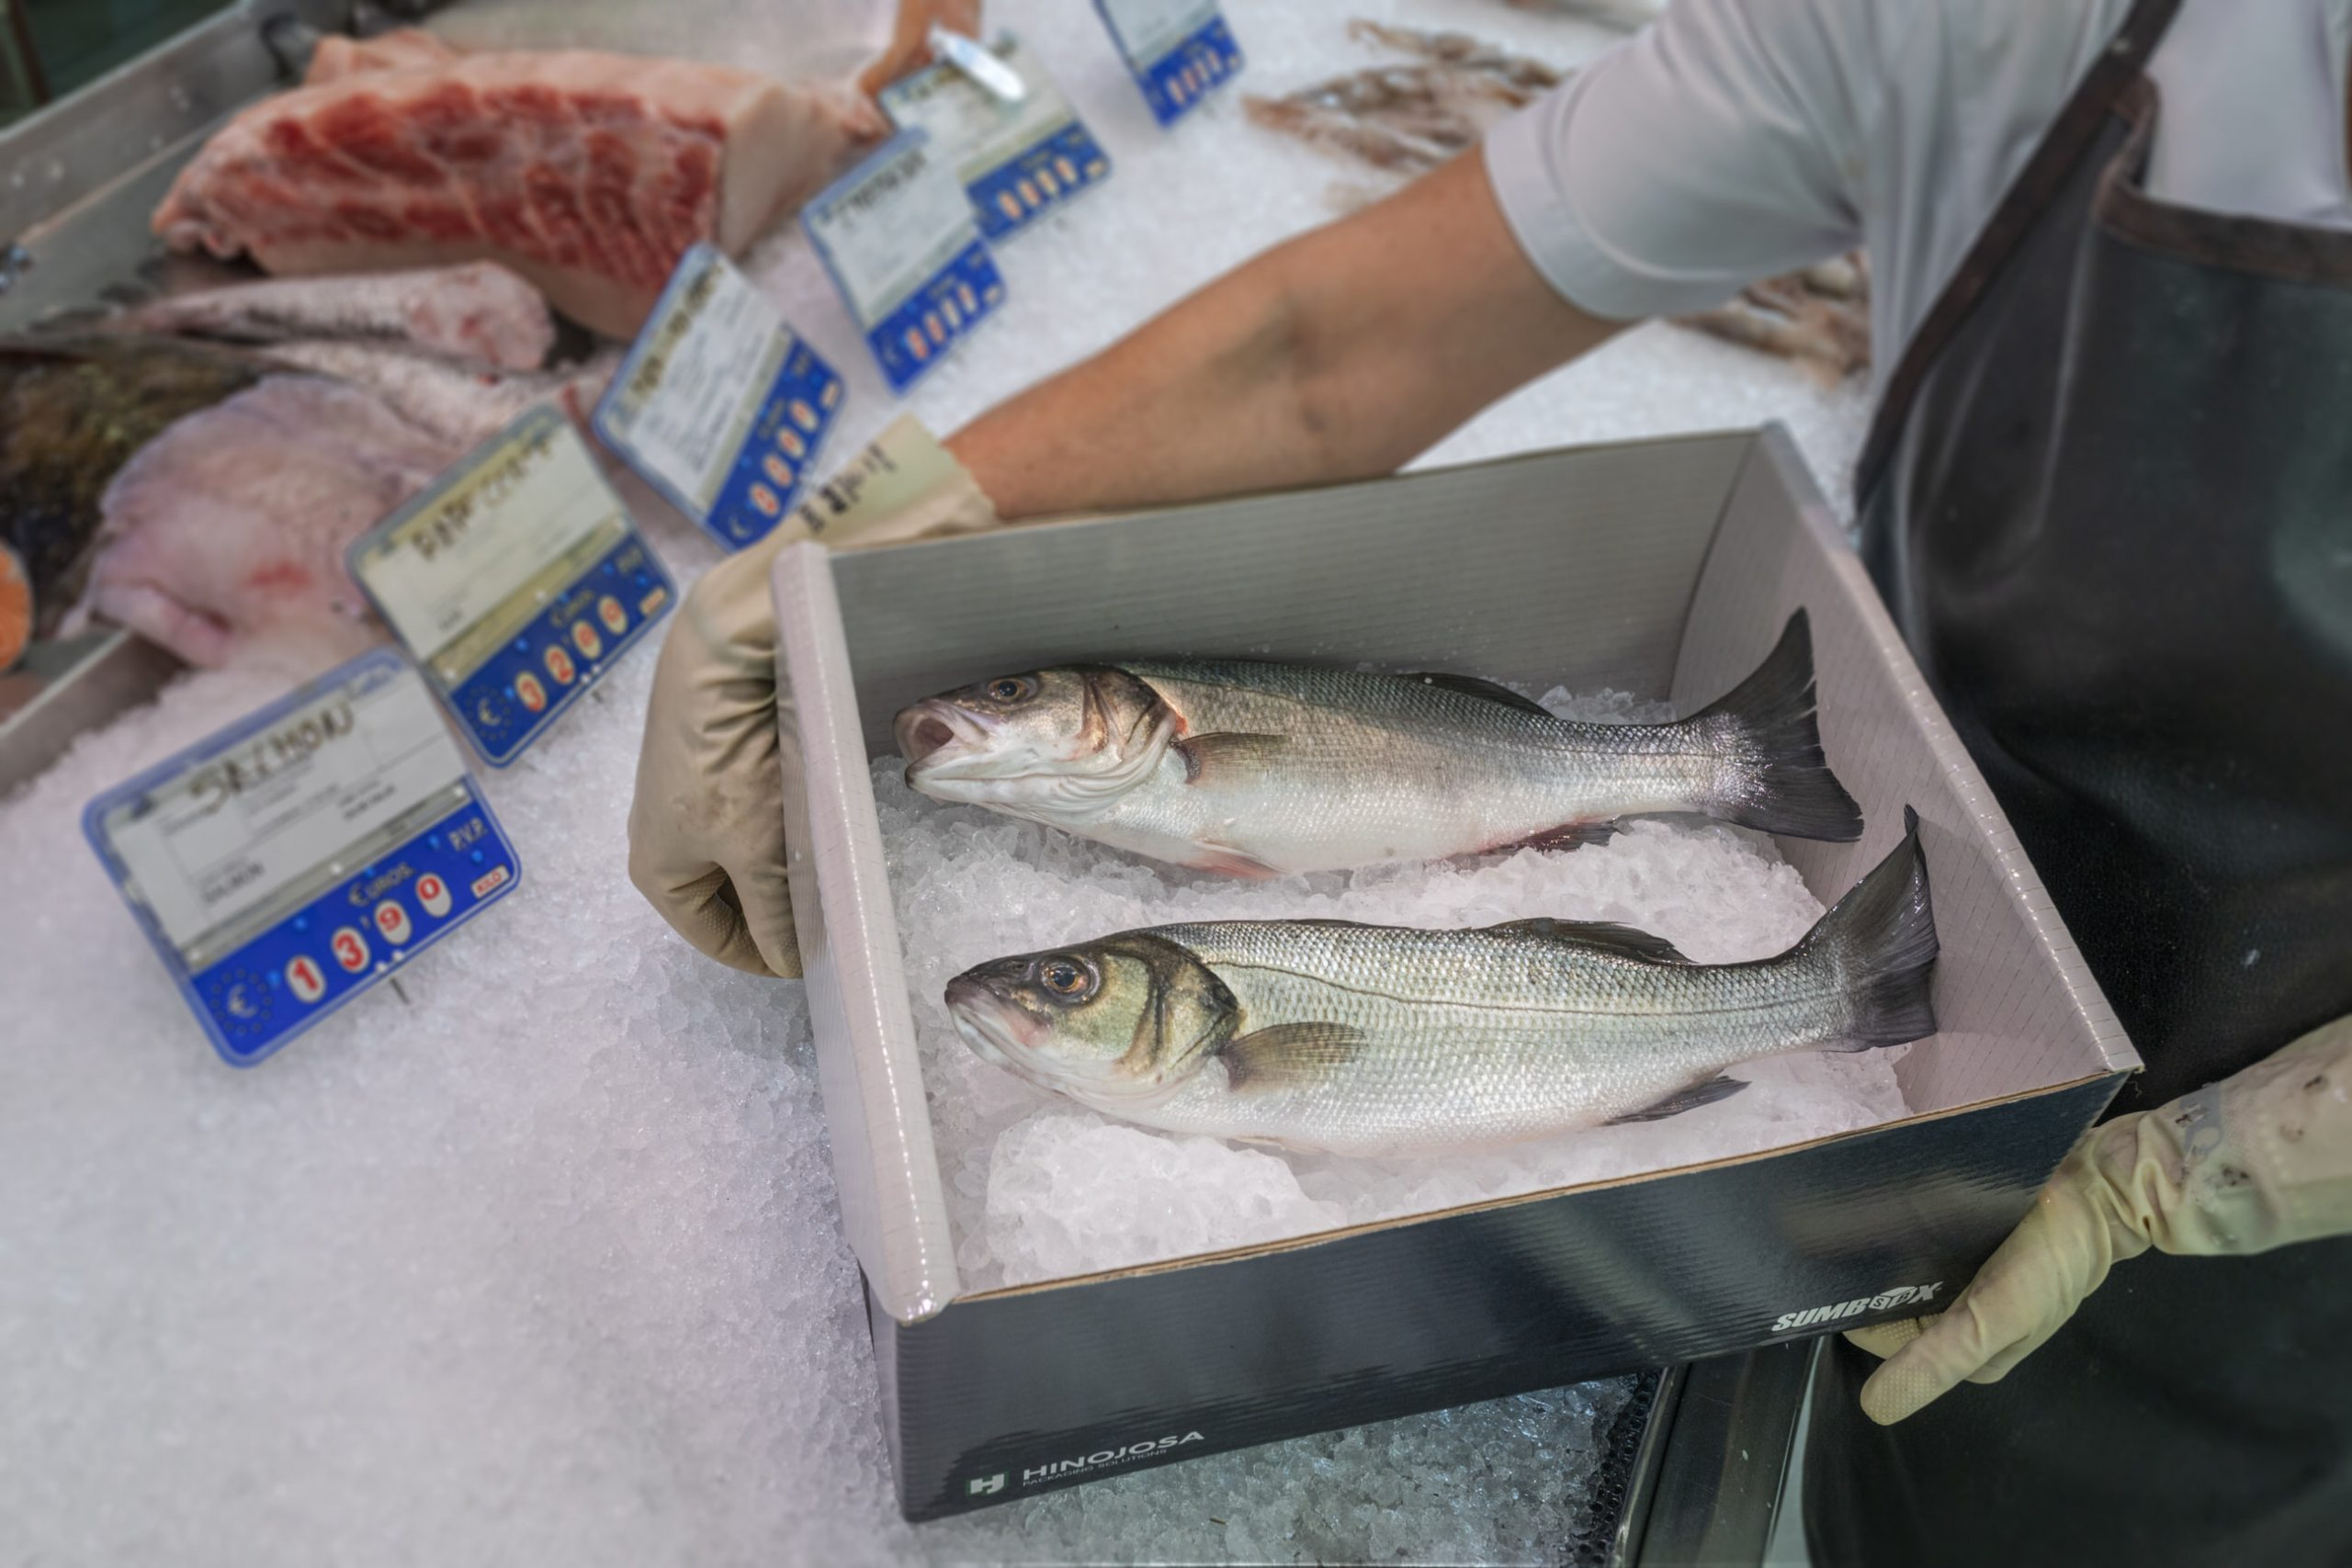 Hinojosa presents sustainable packaging for seafood at Conxemar